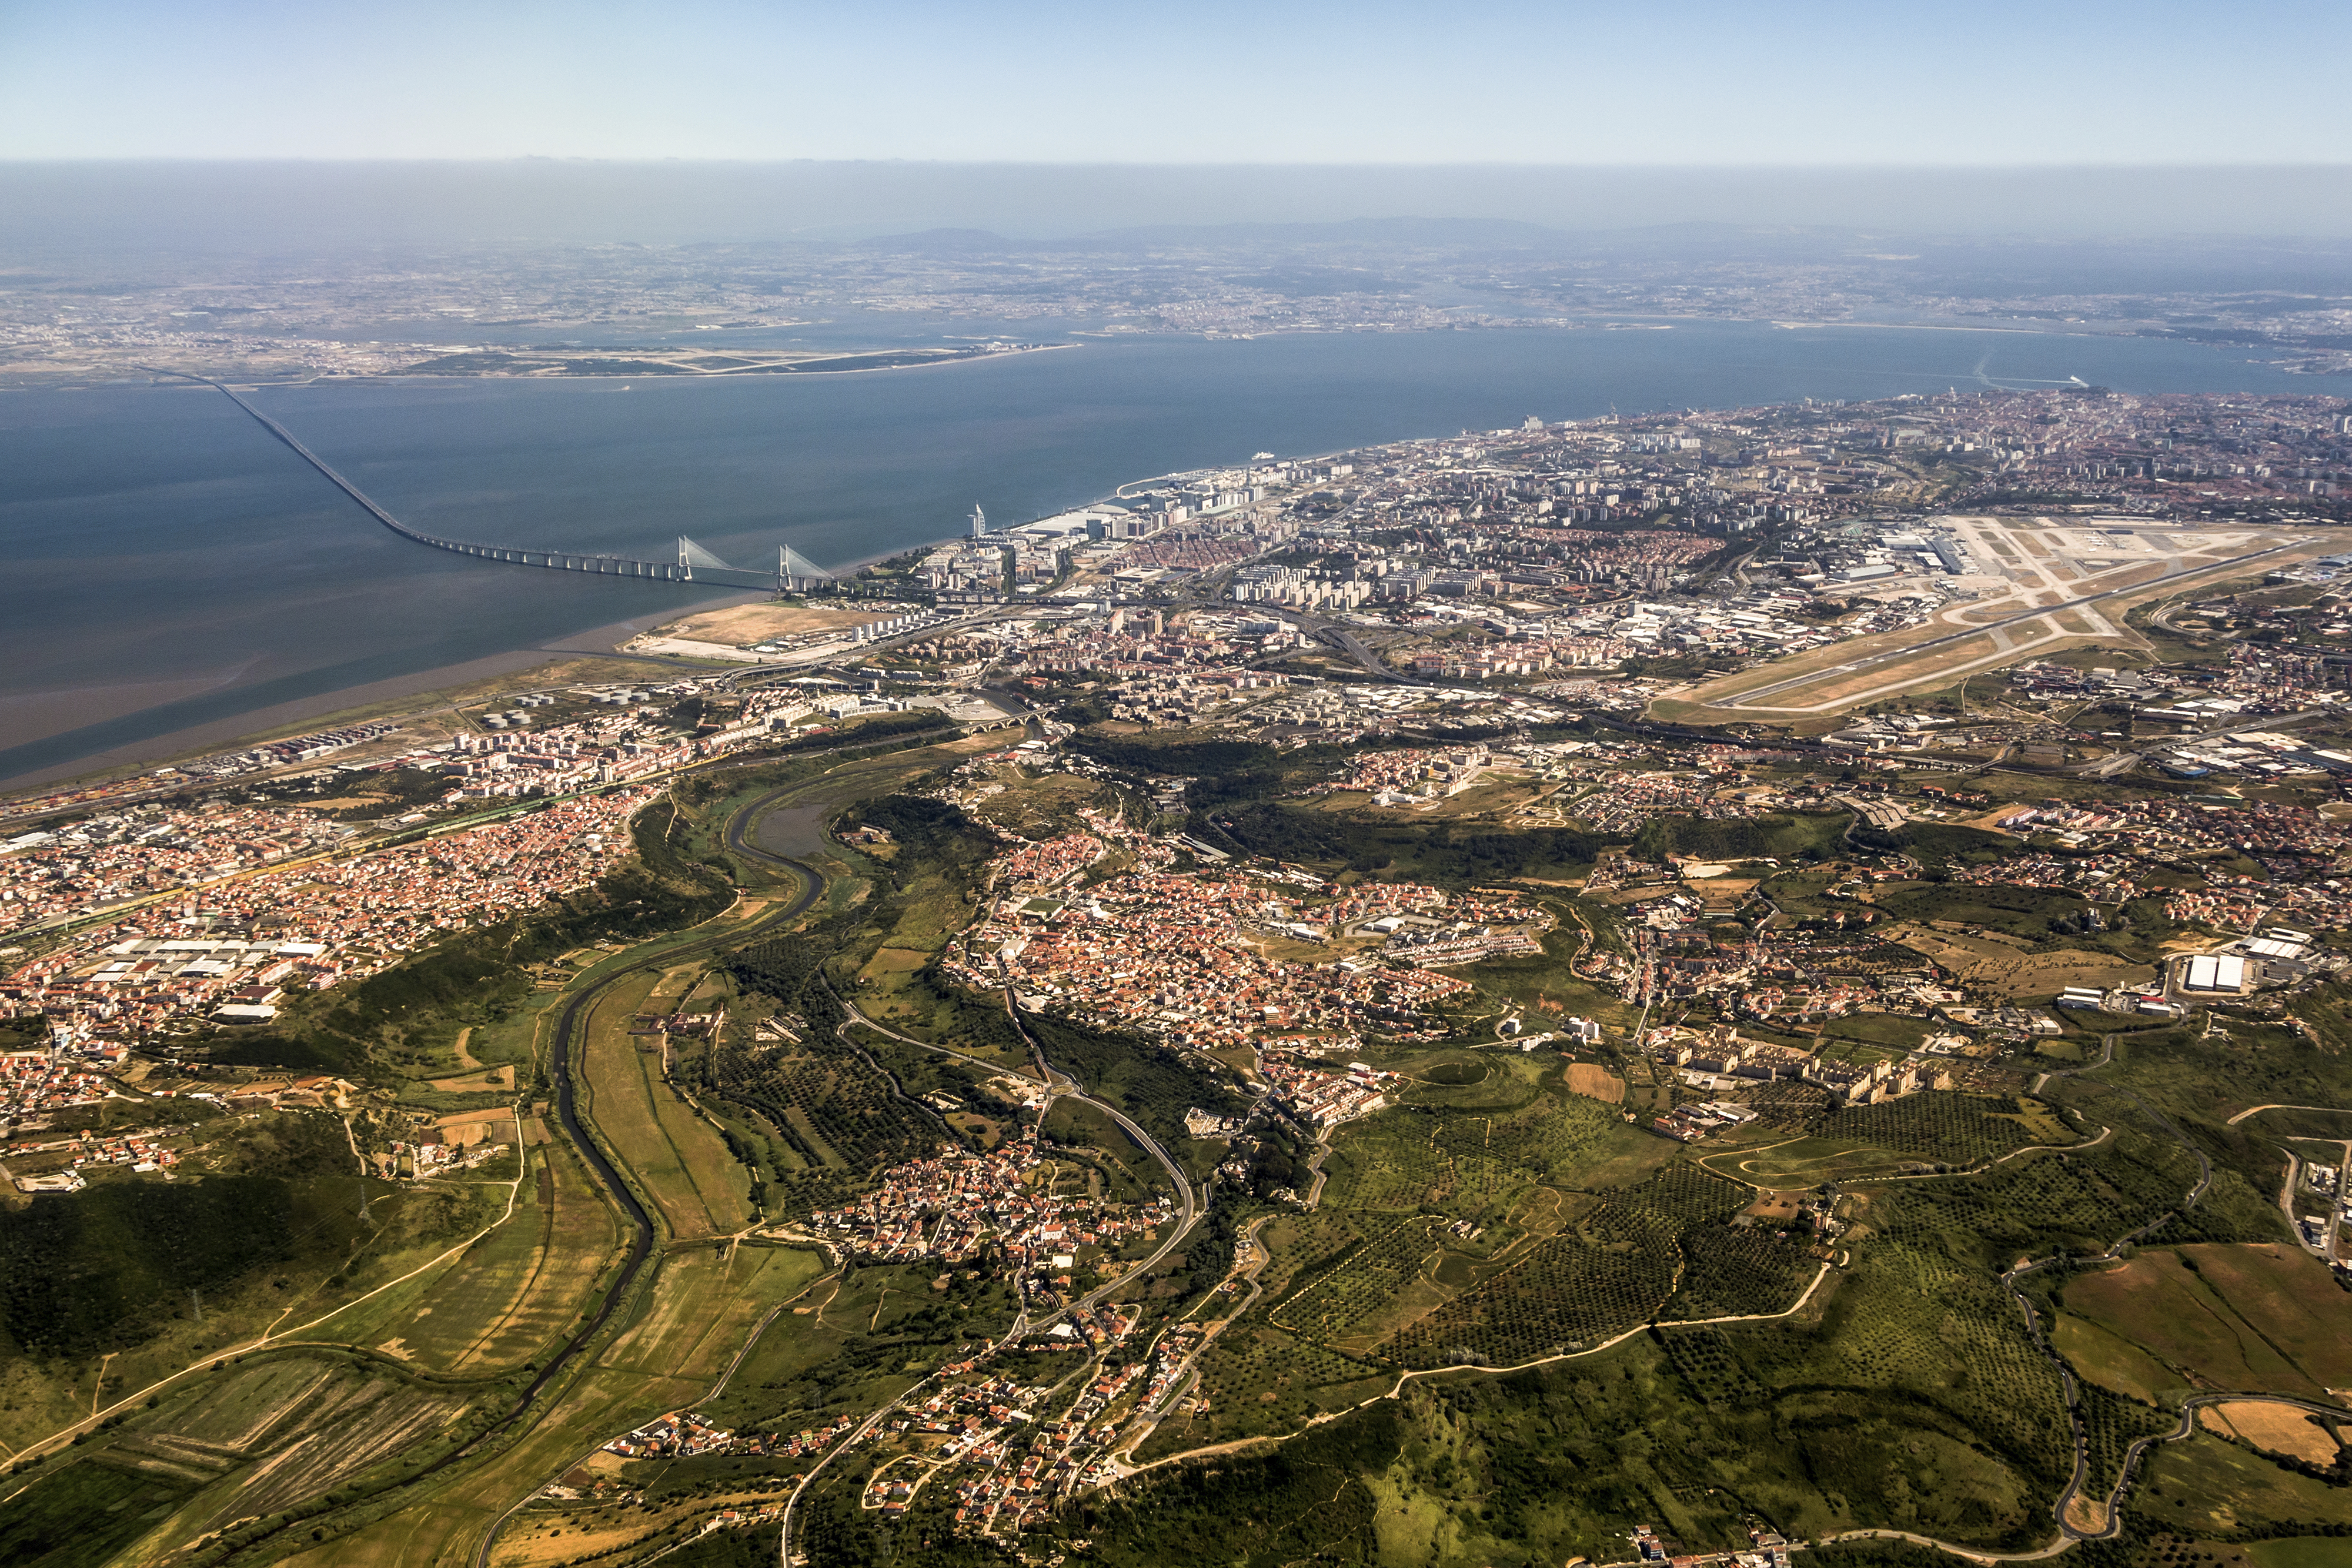 Lisbon Portela Airport viewed from the sky